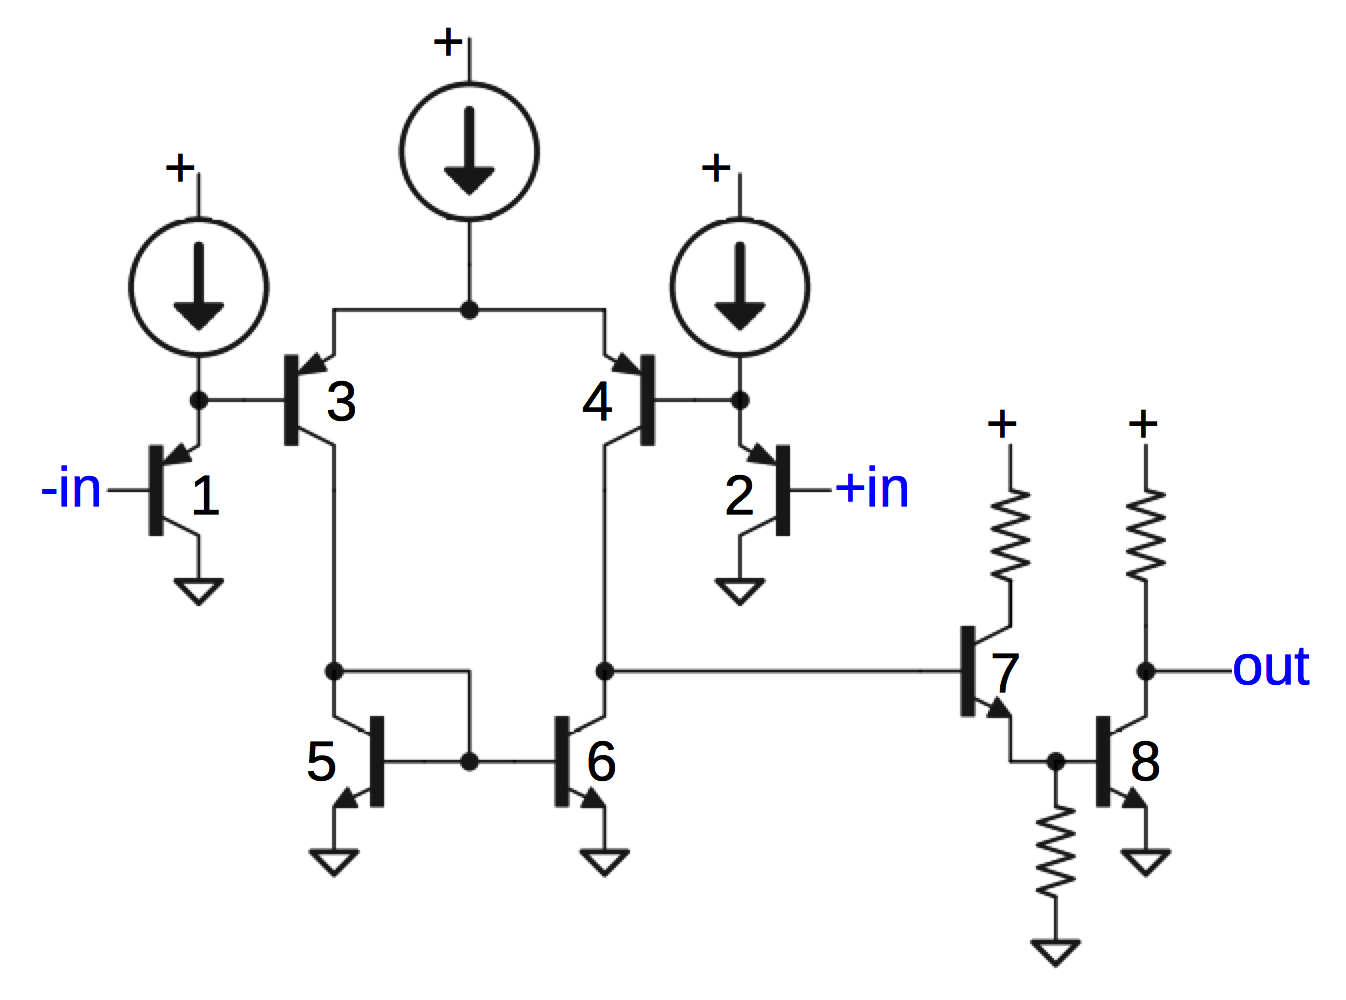 hight resolution of schematic of comparator circuit in 76477 sound chip slightly simplified